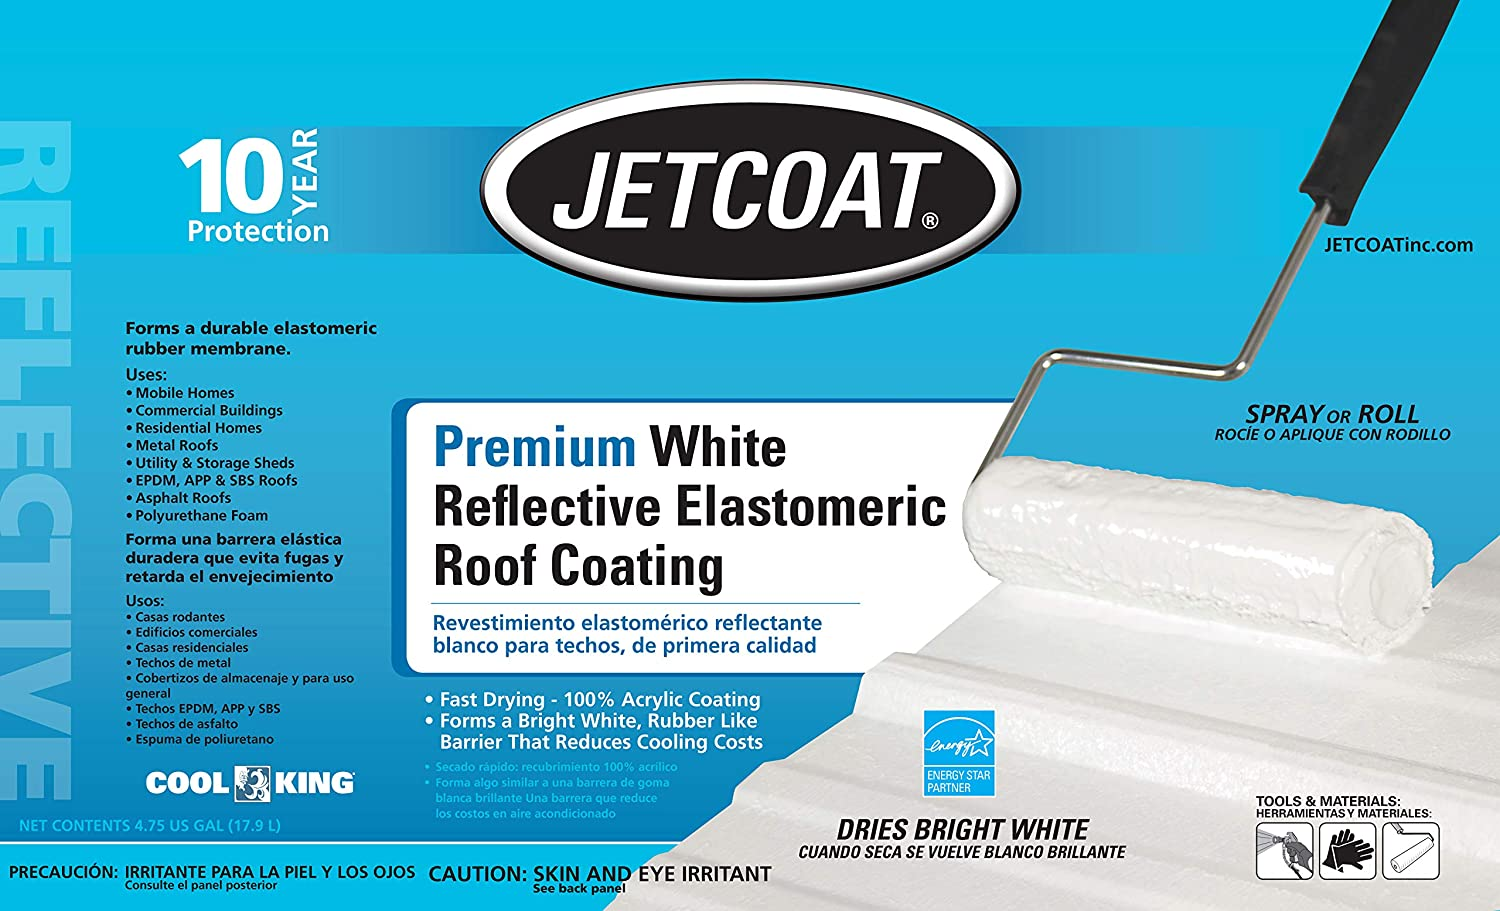 Jetcoat Cool King Elastomeric Acrylic Reflective Roof Coating, White, 5 Gallon, 10 Year Protection - - Amazon.com